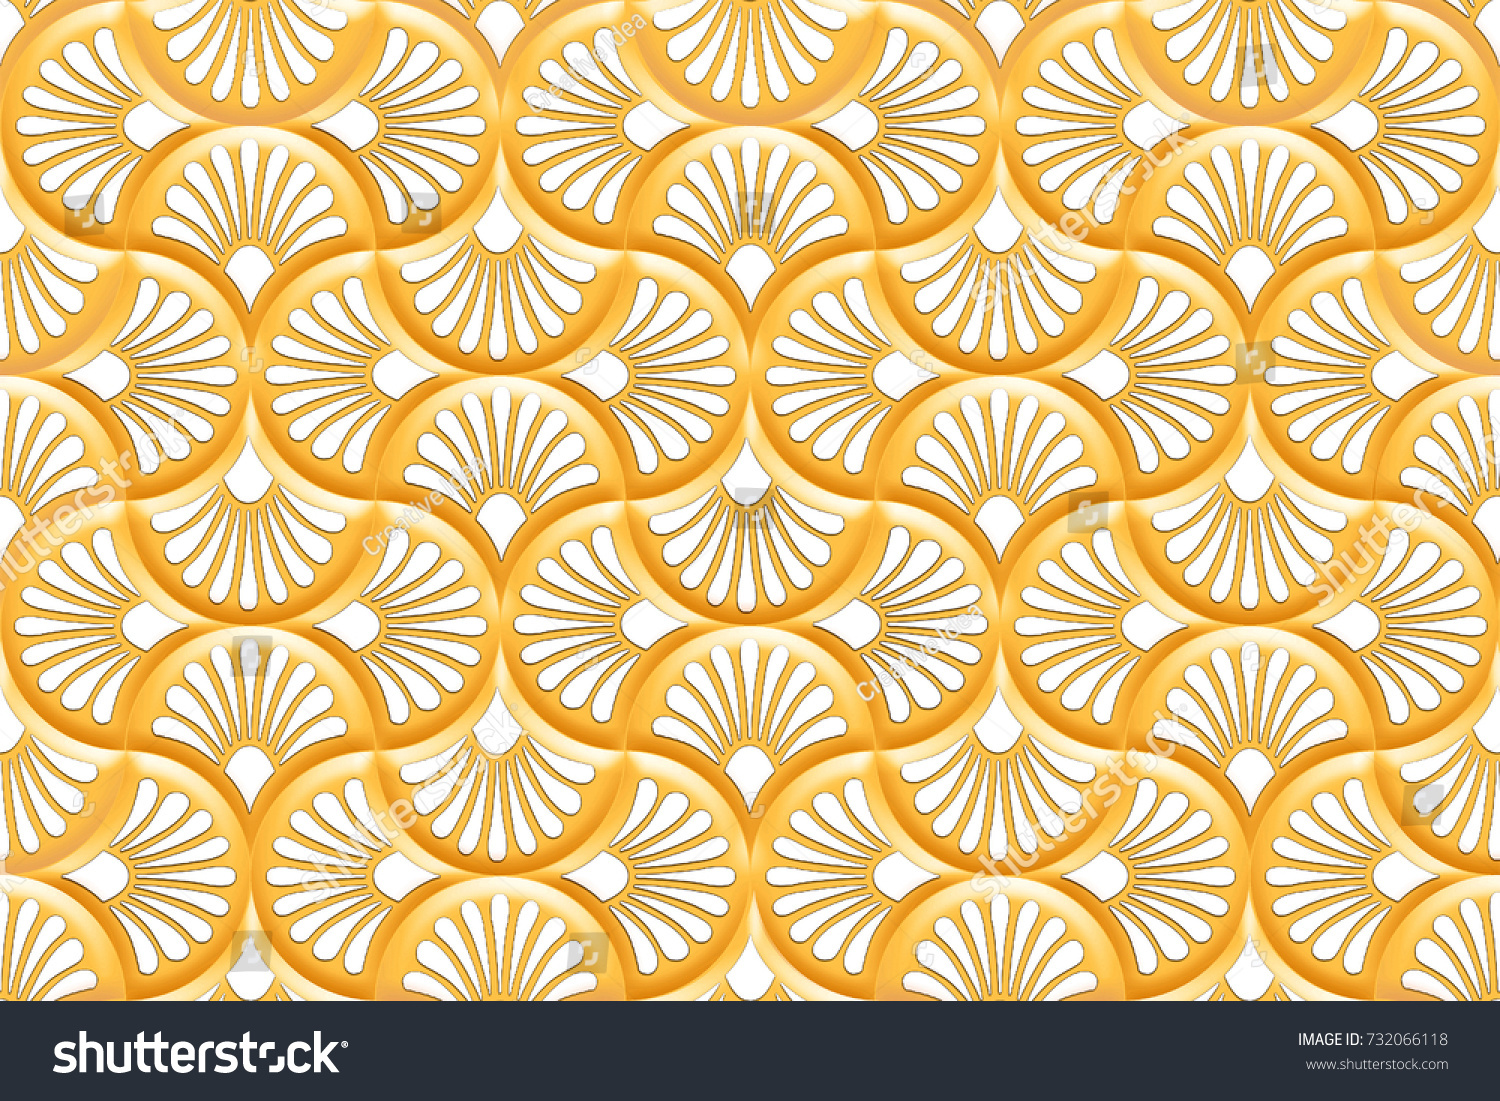 Abstract Home Decorative Wall Tiles Pattern Stock Illustration ...